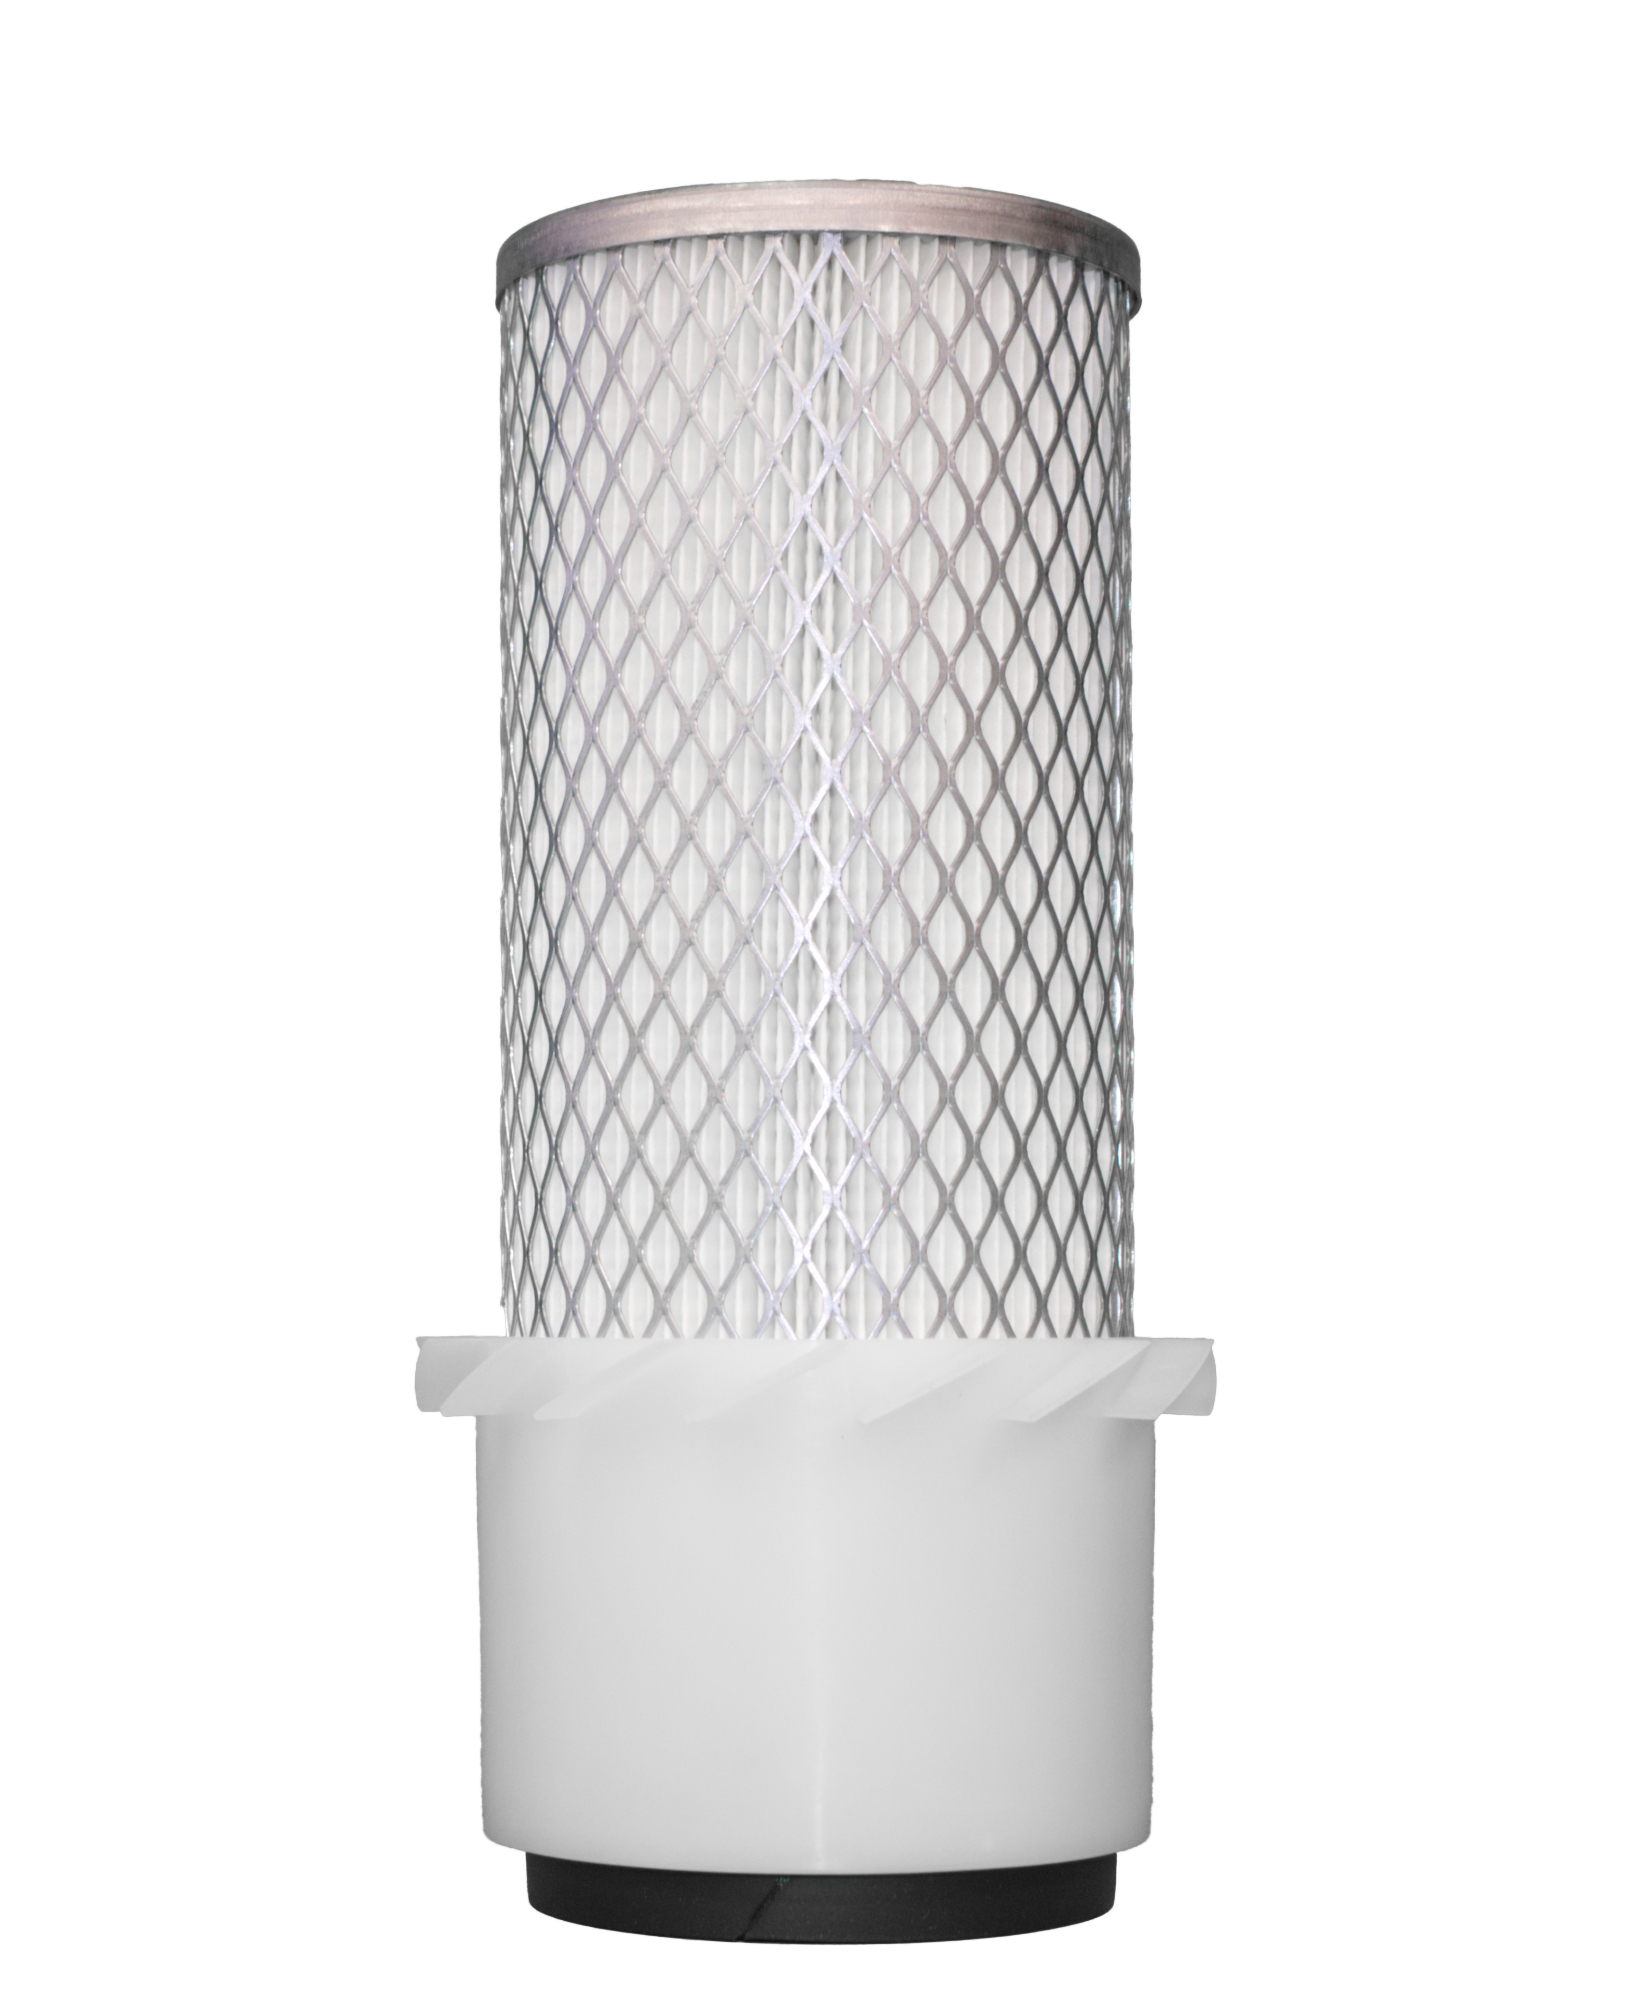 "Aspirator 10.5"" Filter With Outer White Plastic Collar"